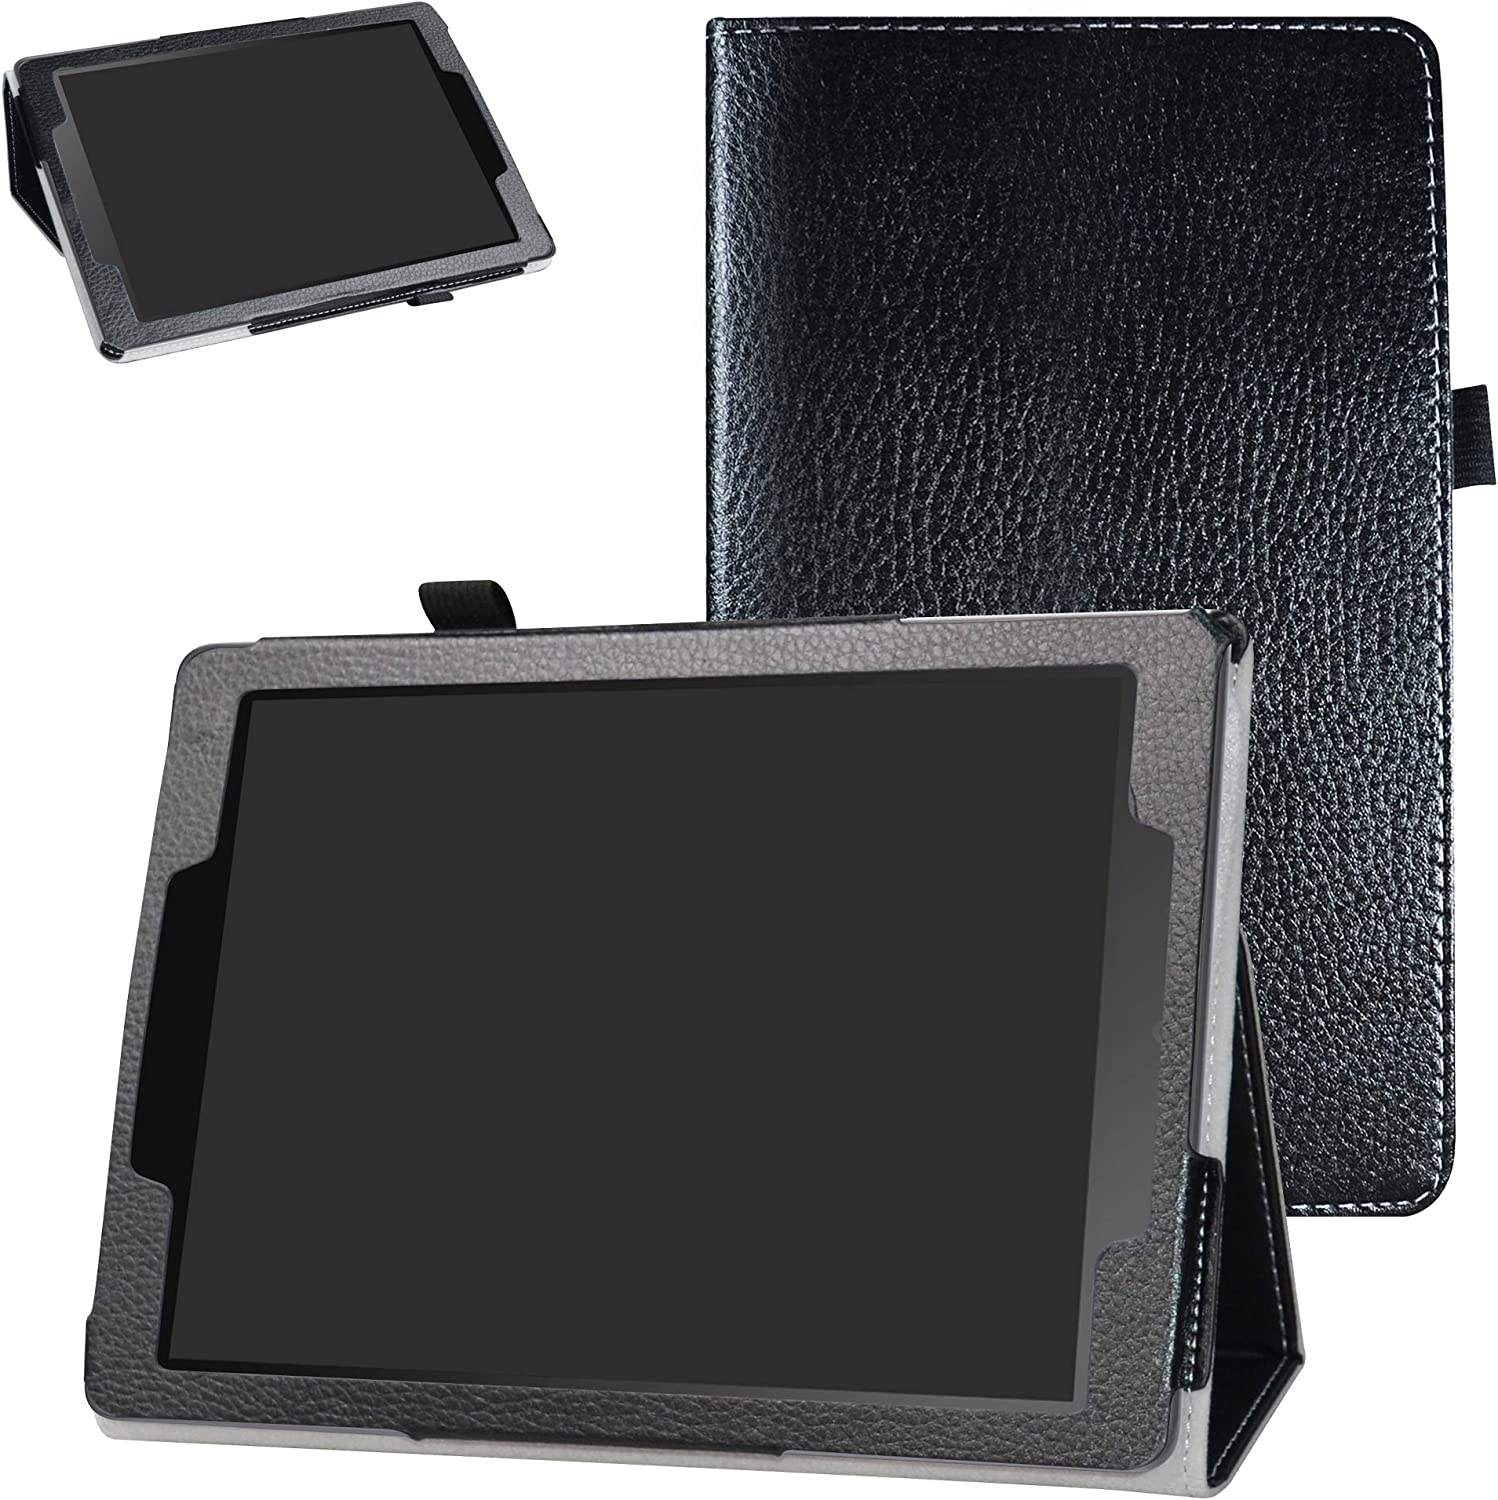 """Chromebook Tablet CT100PA Case,Bige PU Leather Folio 2-Folding Stand Cover for 9.7"""" ASUS Chromebook Tablet CT100PA,Black"""